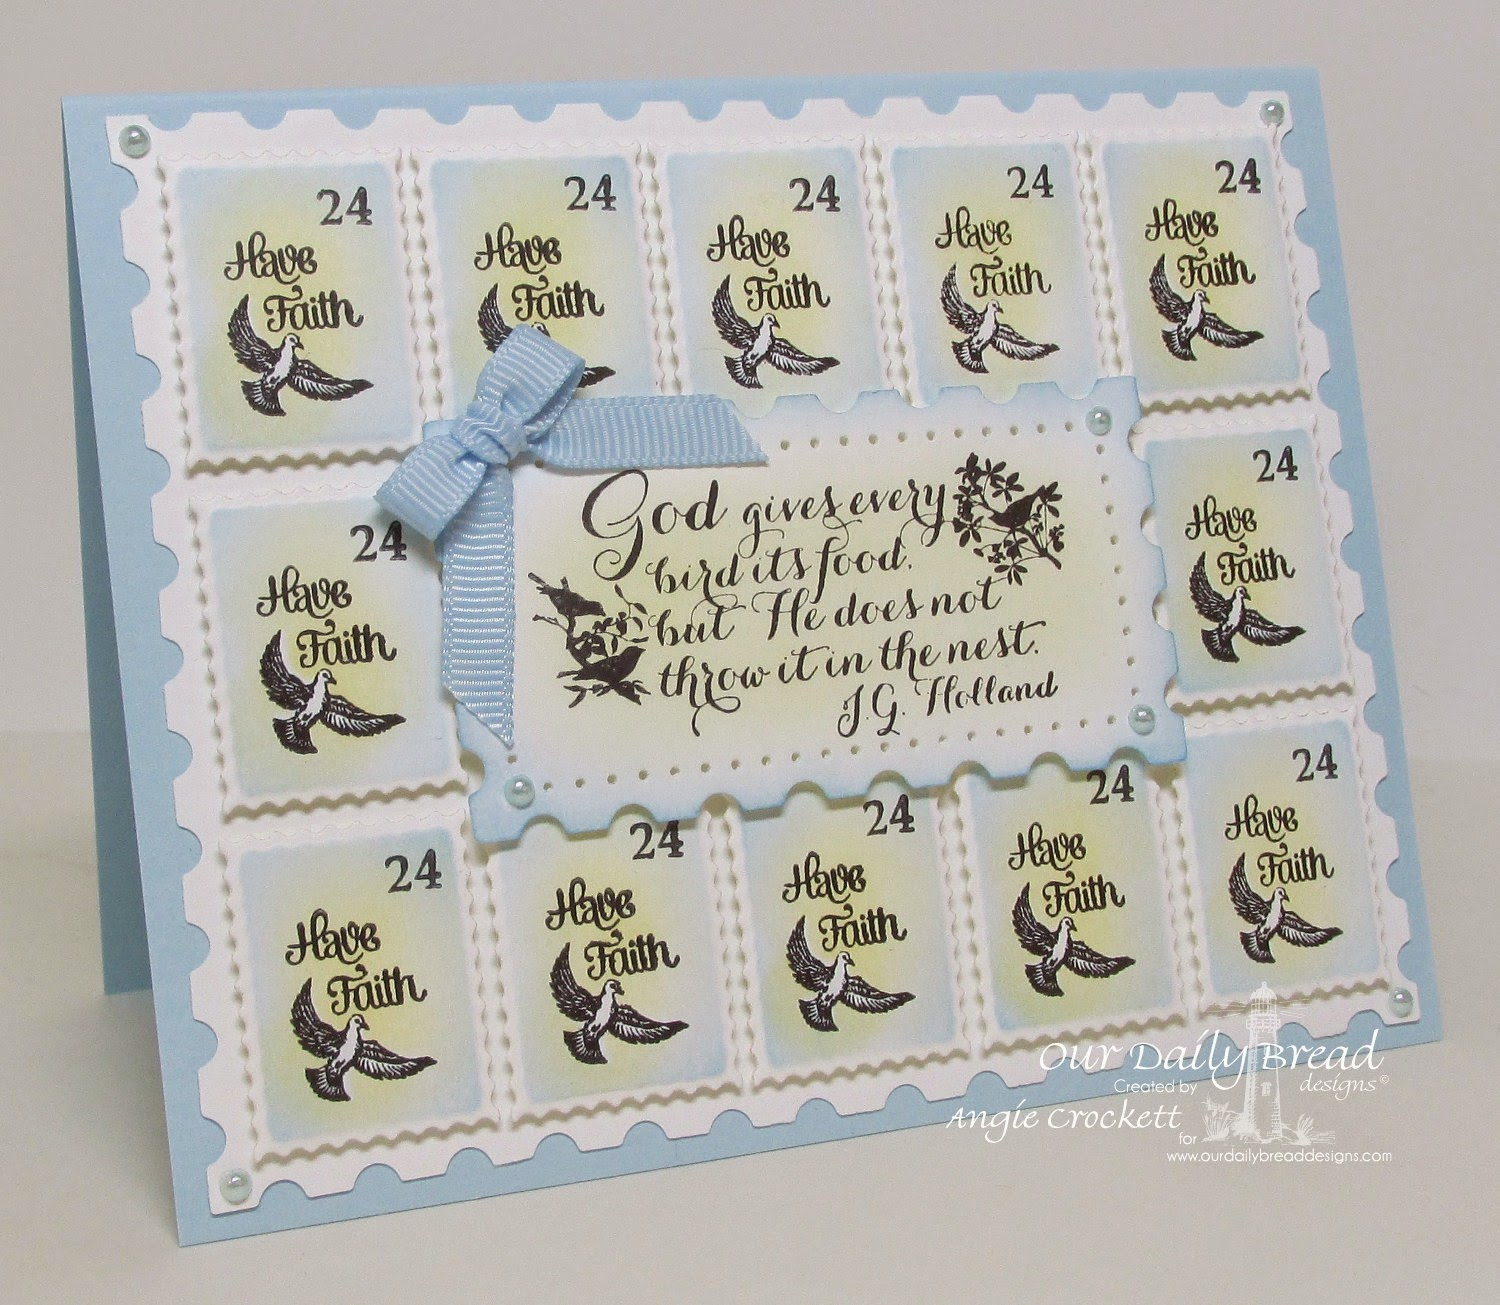 Our Daily Bread designs Admit One, ODBD Custom Mini Tags Dies, Quote Collection 2, Card Designer Angie Crockett